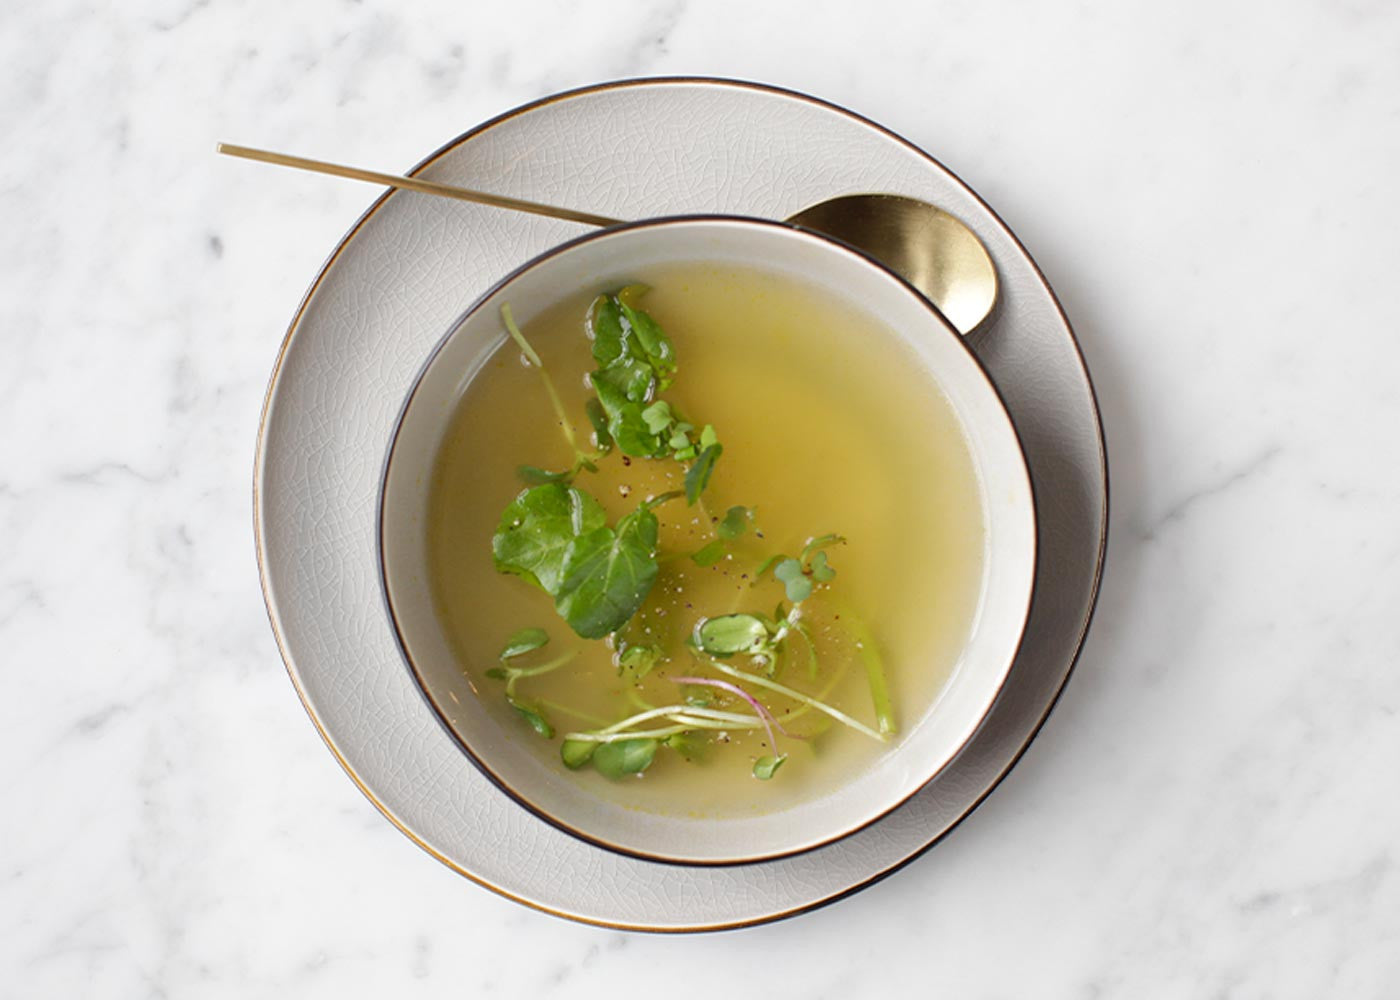 BONE VEGETABLE BROTH GOOD FOR CELLULITE